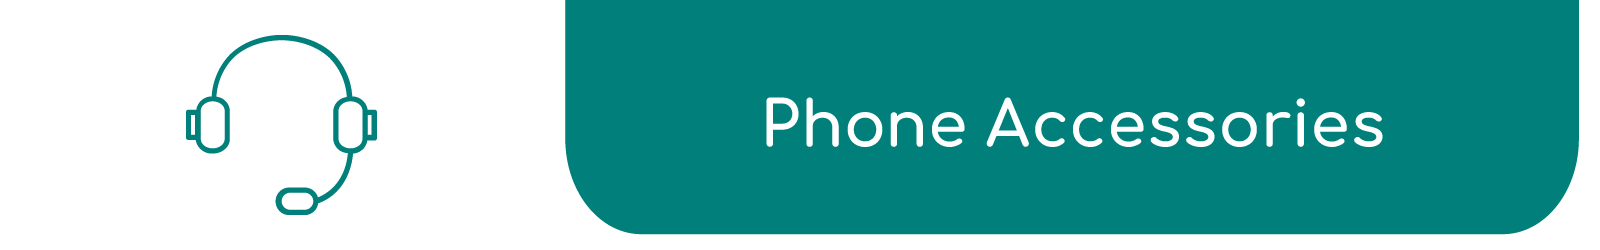 IP Phone Accessories - Electronic Communication Services